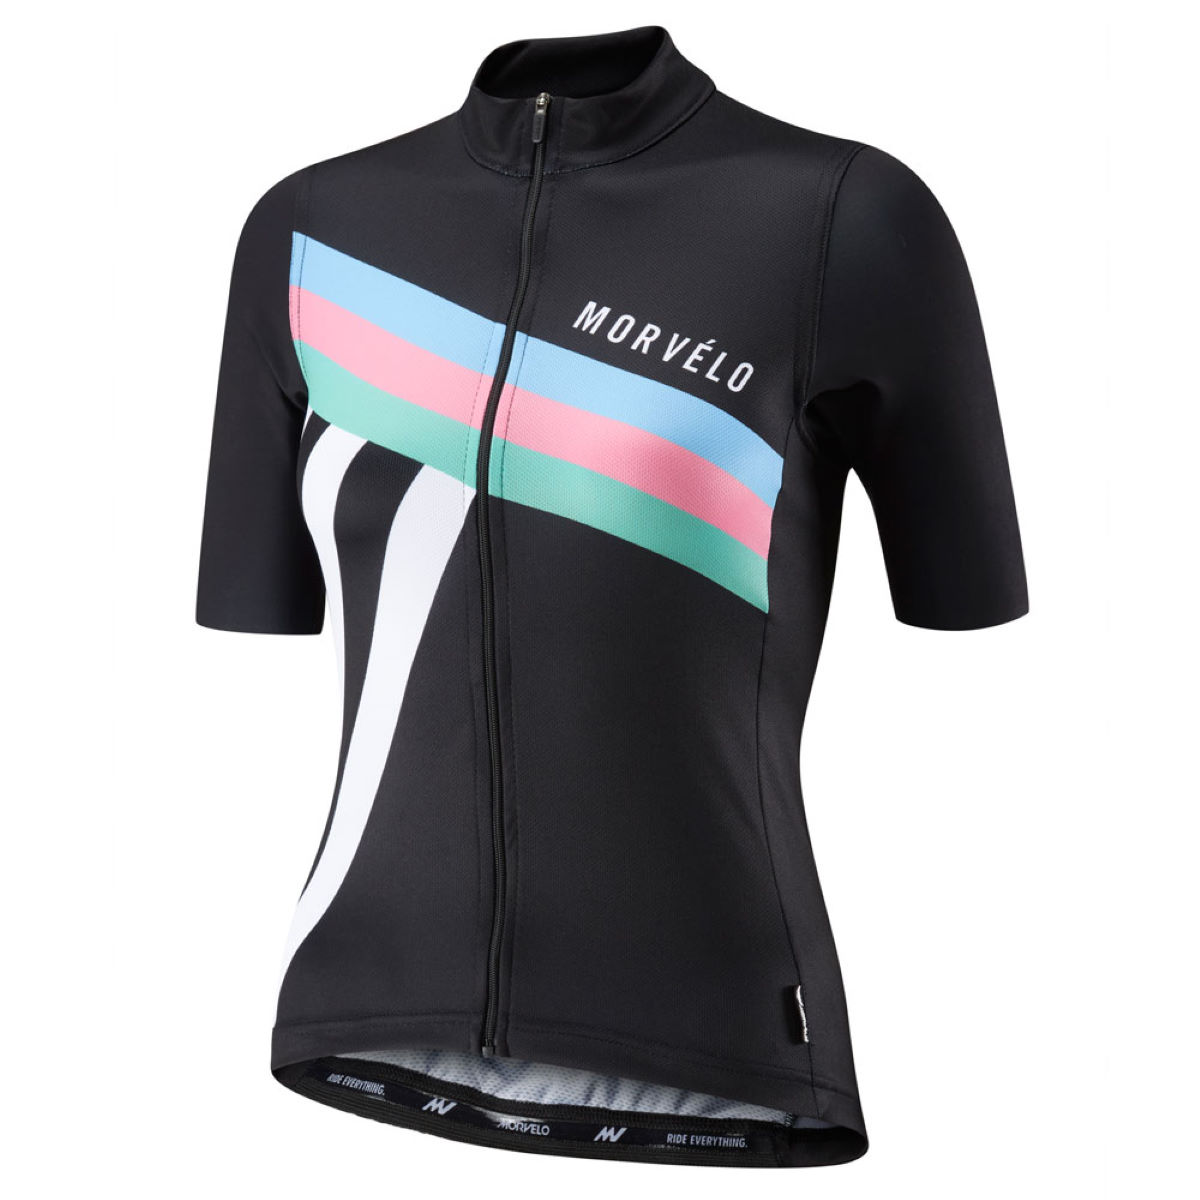 Maillot Femme Morvelo Mimo (manches courtes) - M Mimo